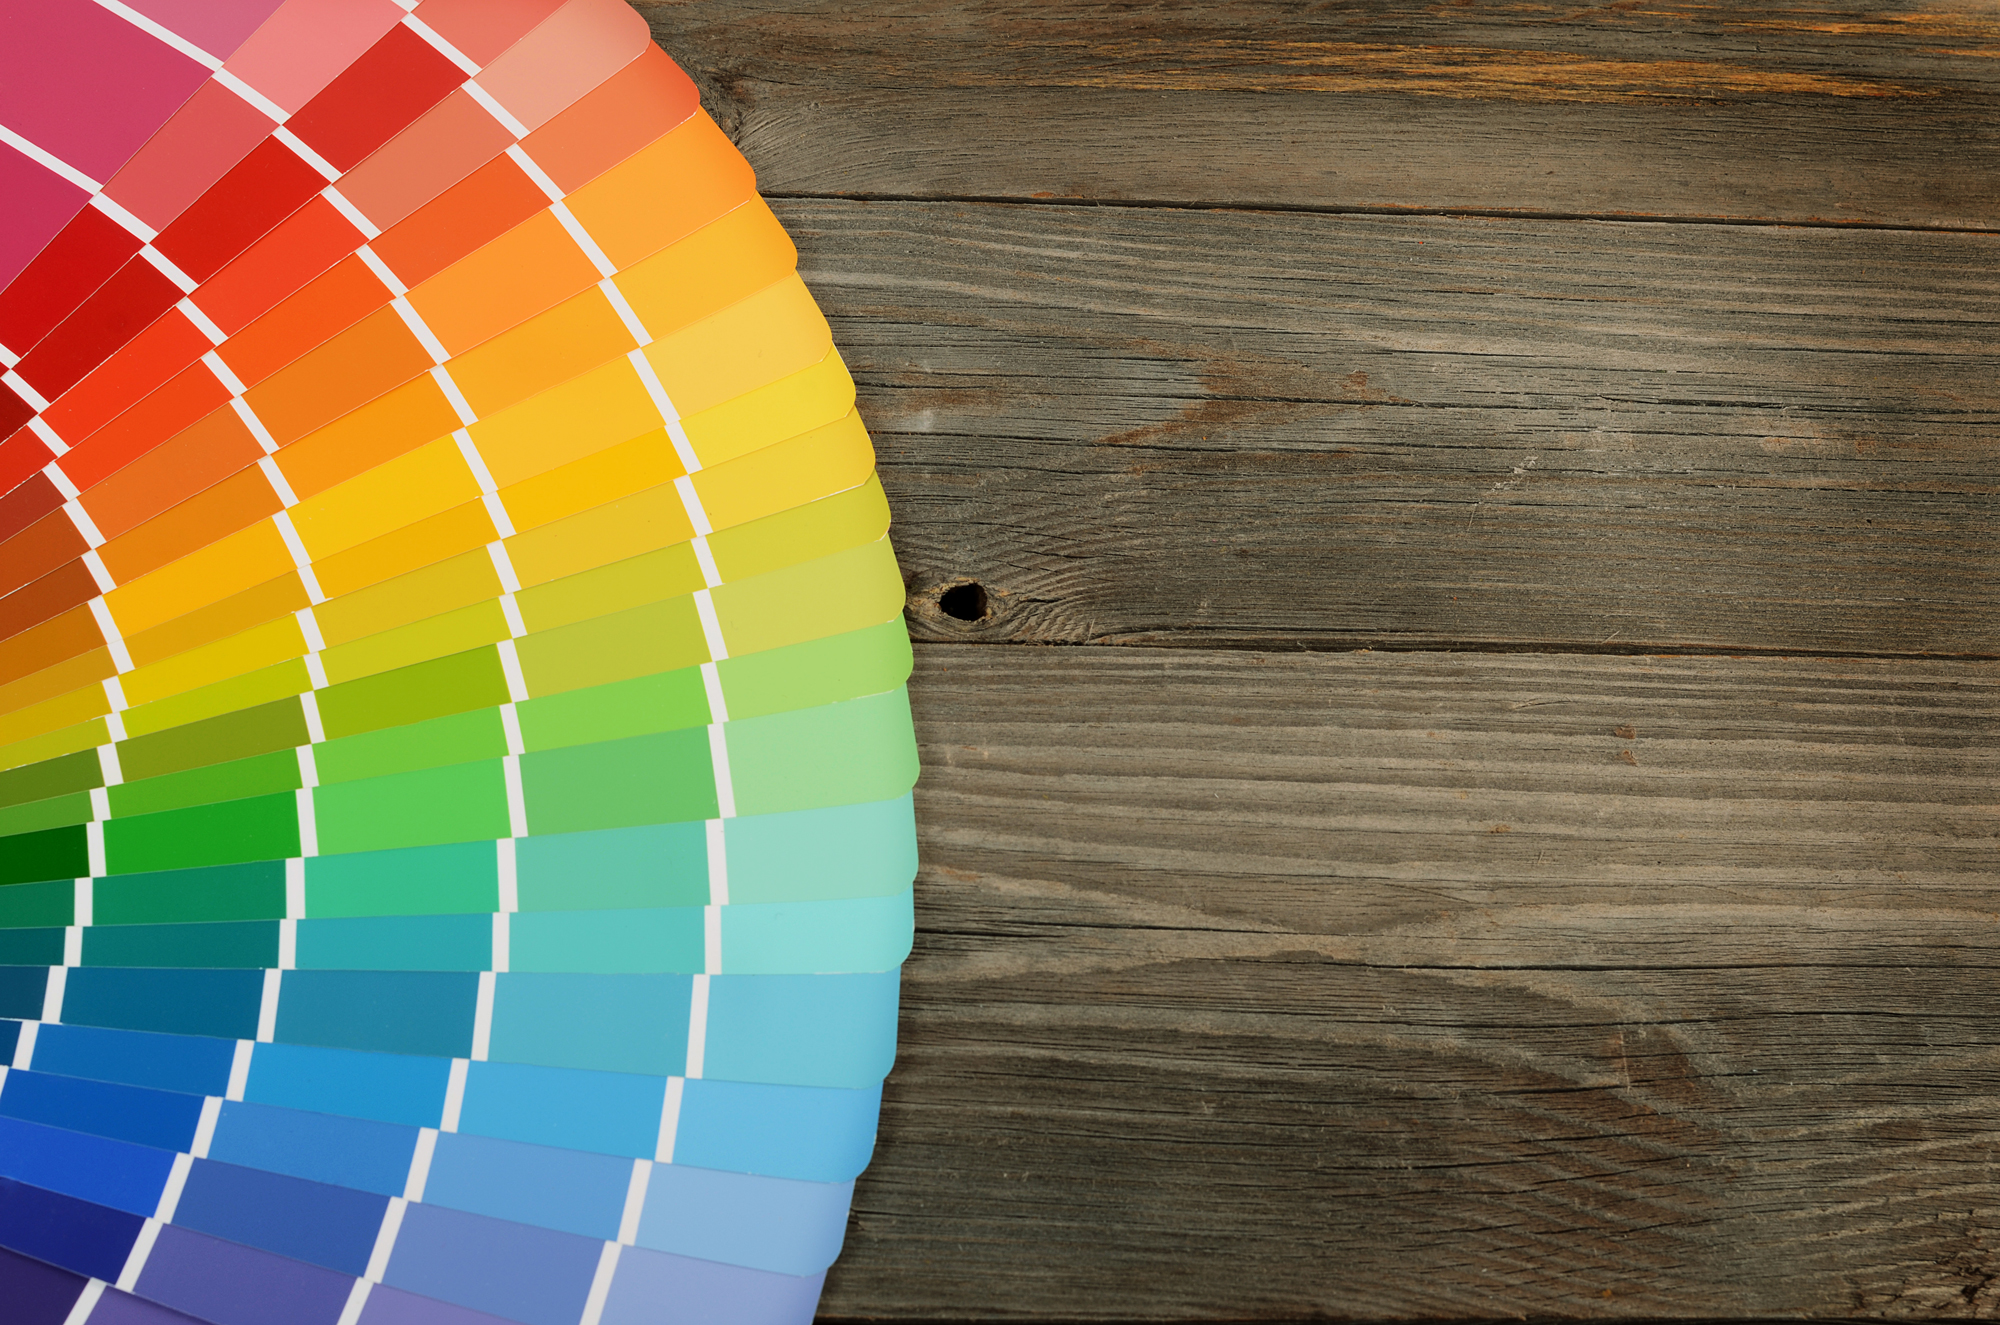 How to use colours in your accountancy branding for maximum impact and engagement